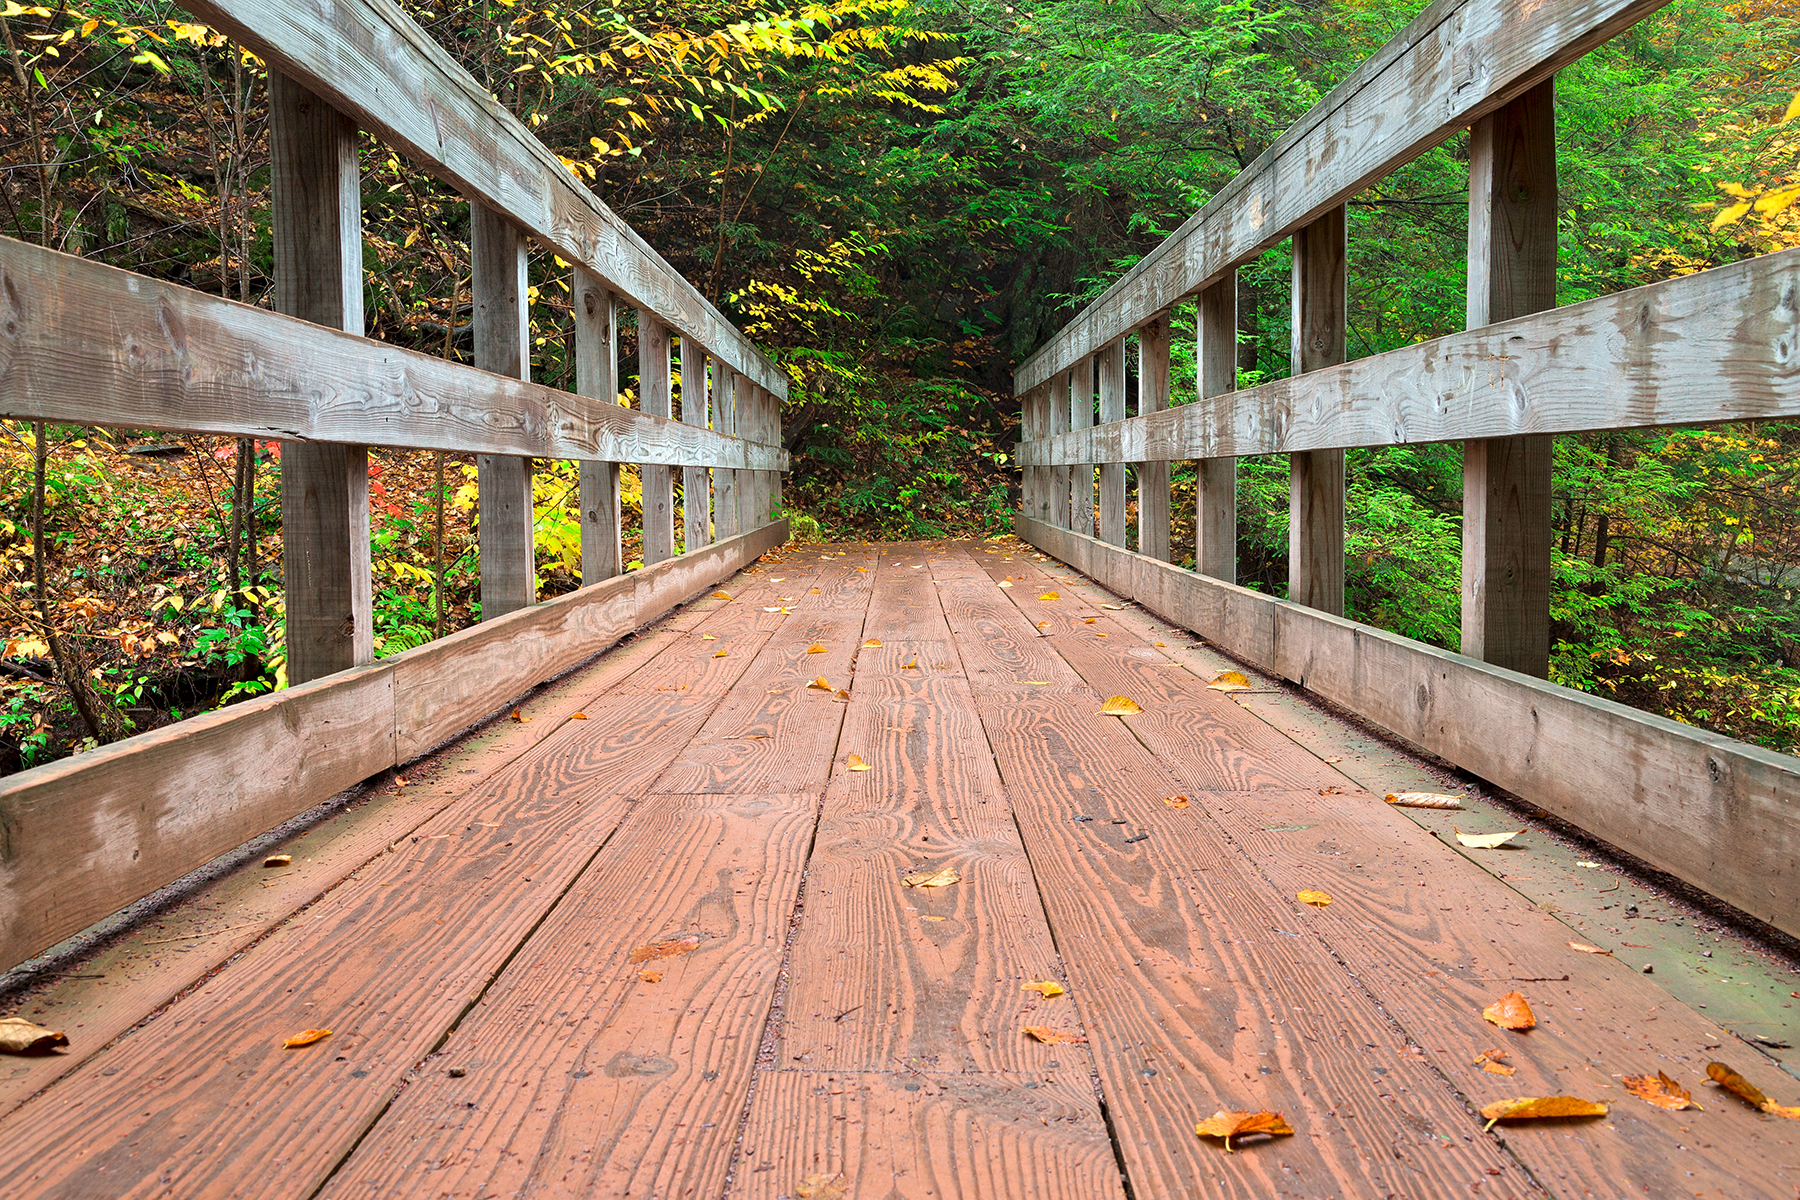 Autumn boardwalk bridge - hdr photo